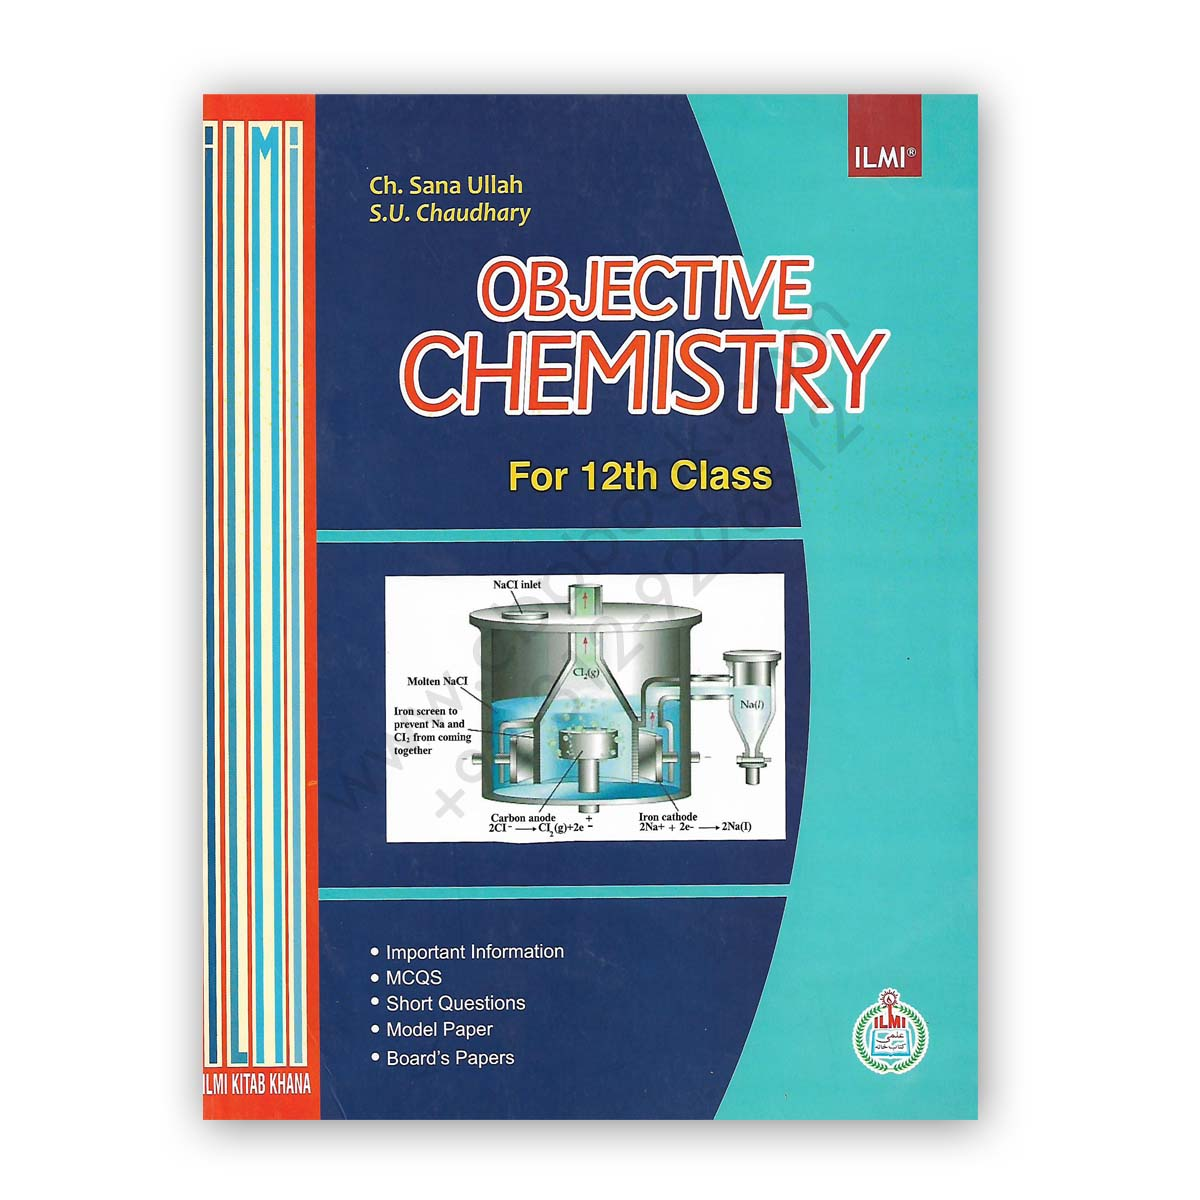 ilmi objective chemistry for 12th class by ch sana ullah & s u chaudhary